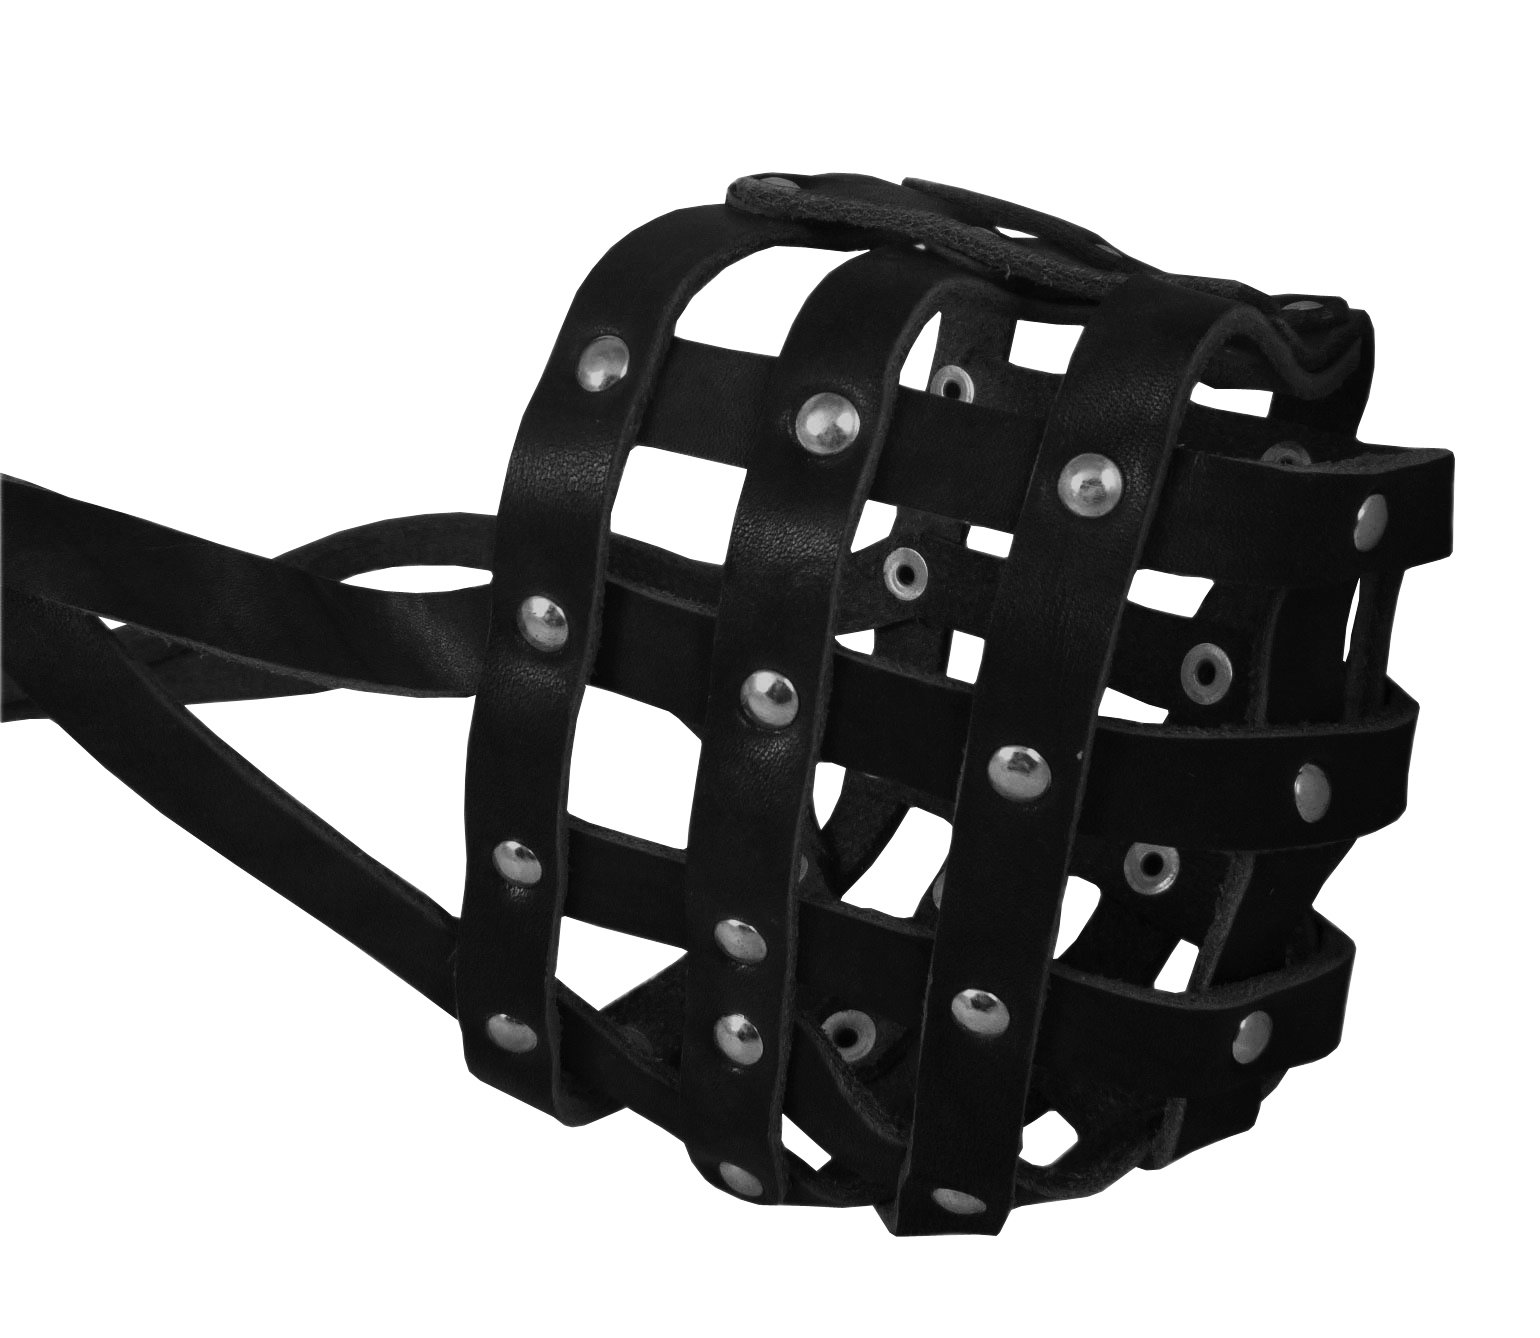 Real Leather Dog Basket Muzzle #114 Black (Circumference 17.3'', Snout Length 4.3'') XXLarge Mastiff, Great Dane